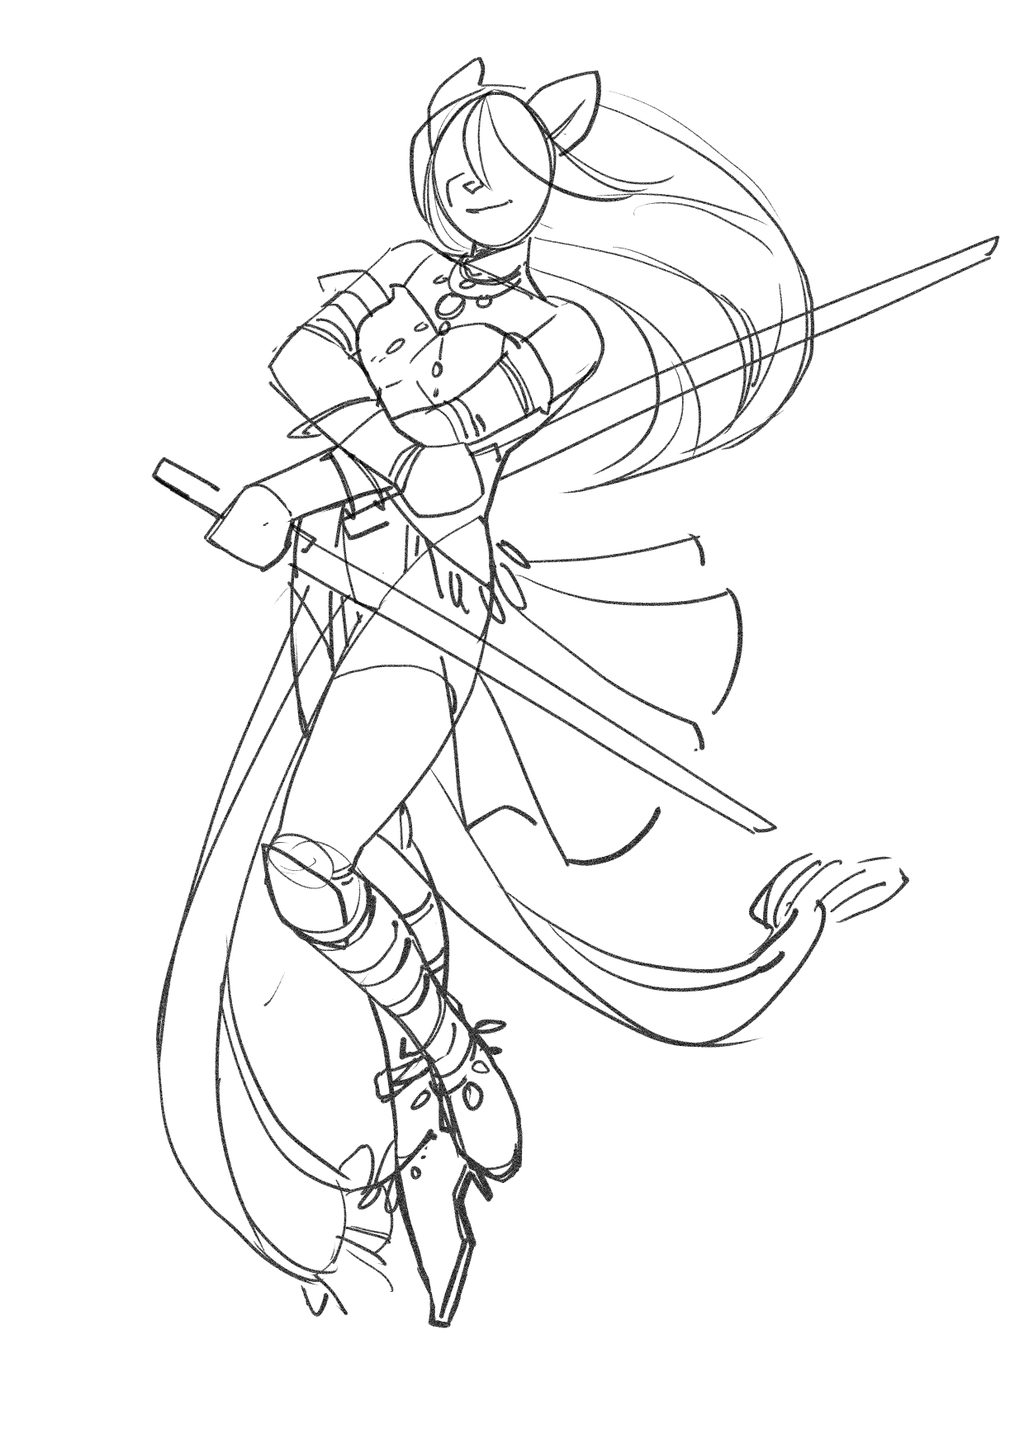 commission wip rough